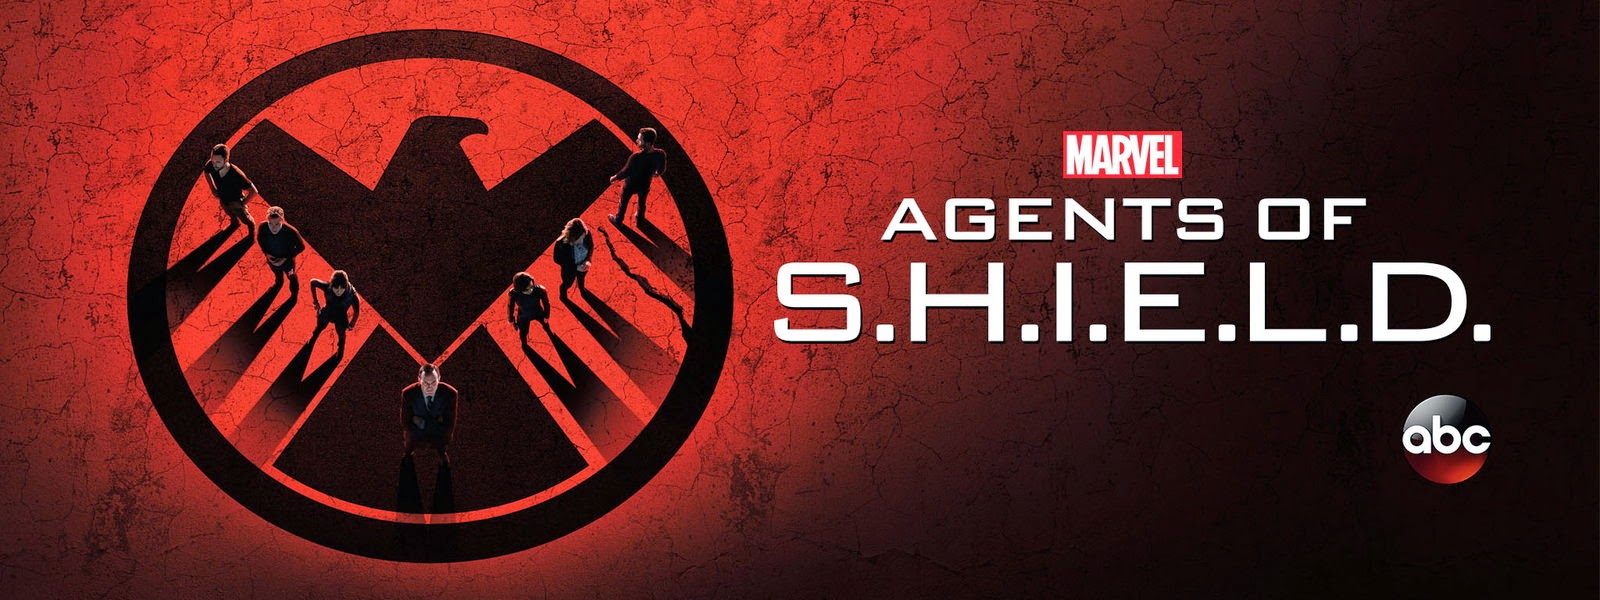 Agents of SHIELD Season 02 All Episodes 1